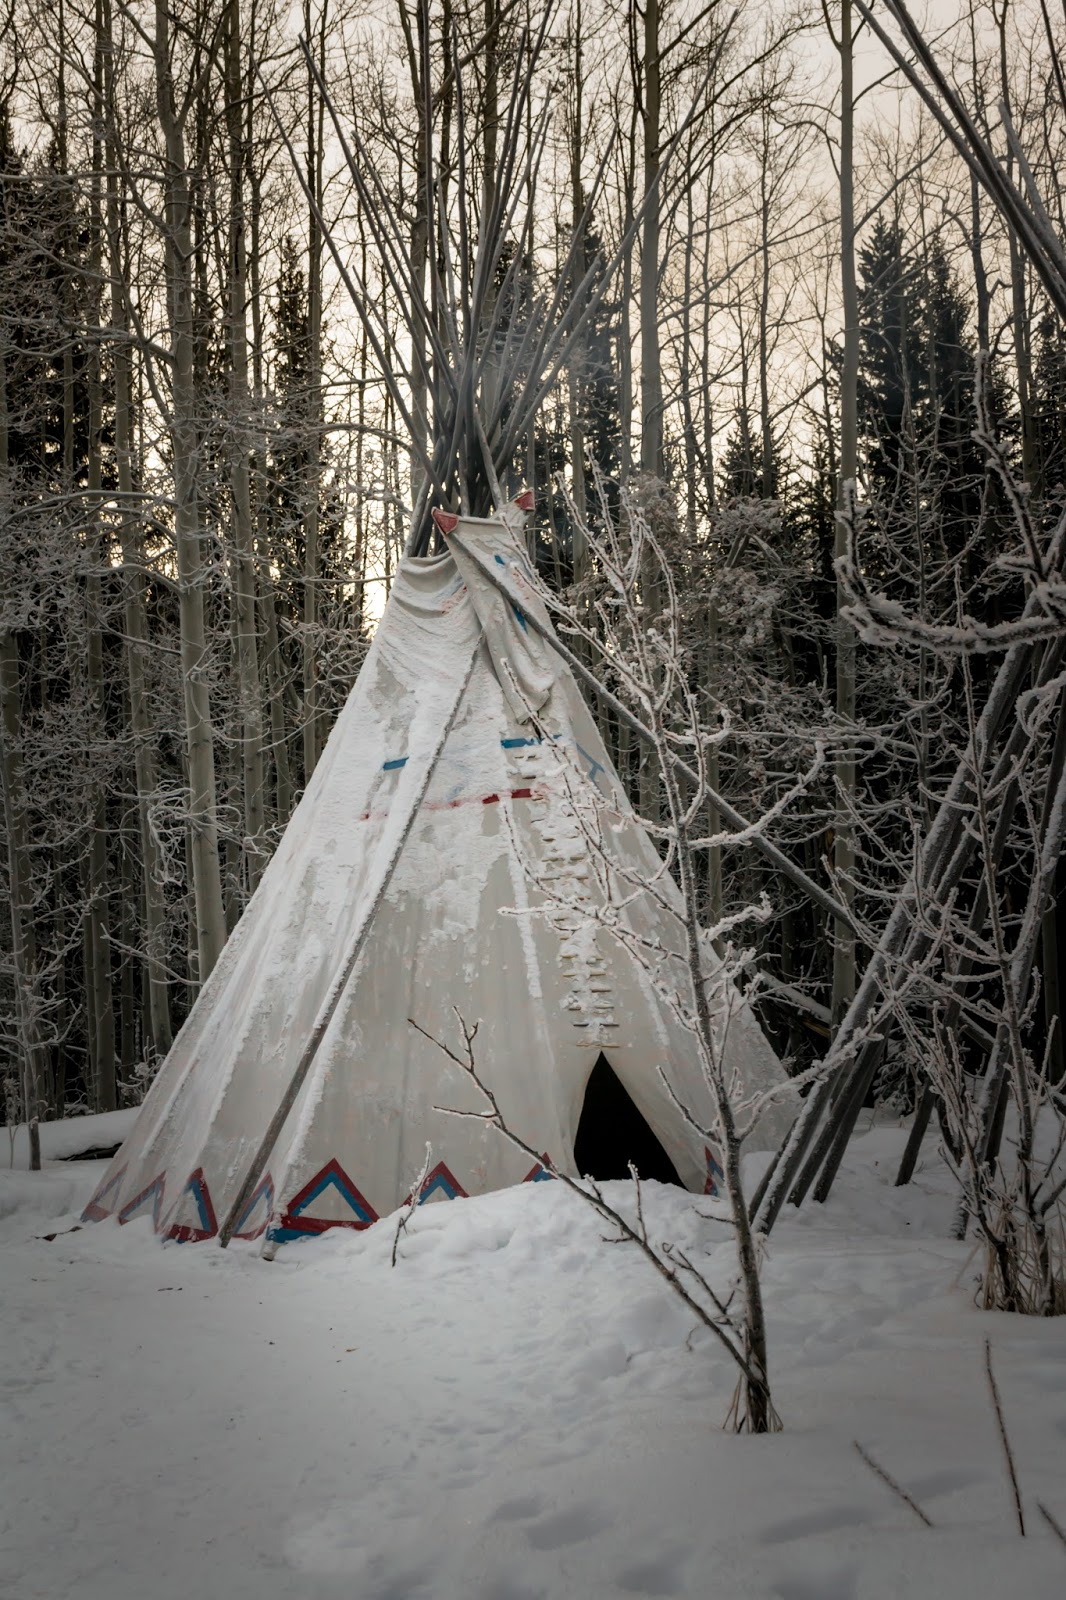 Dogsledding in Kananaskis near Calgary in winter and a Teepee